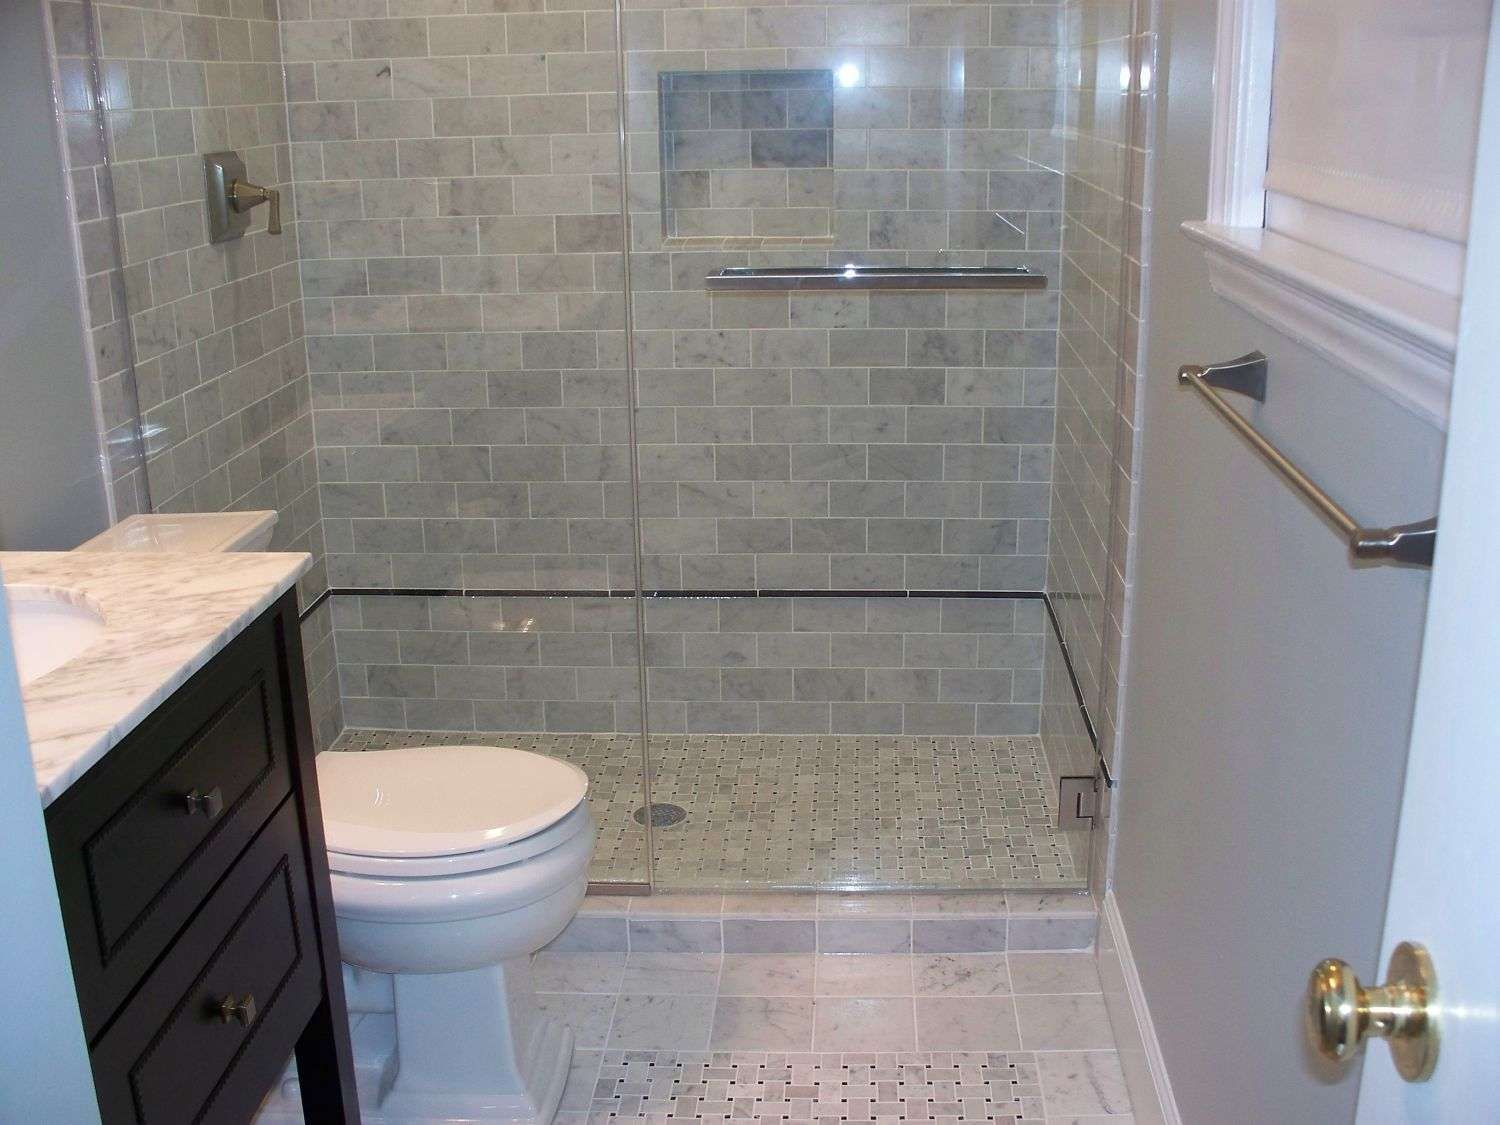 Bathroom Wall And Floor Tiles With A Slight Contrast And Variation Between The Shower Floor